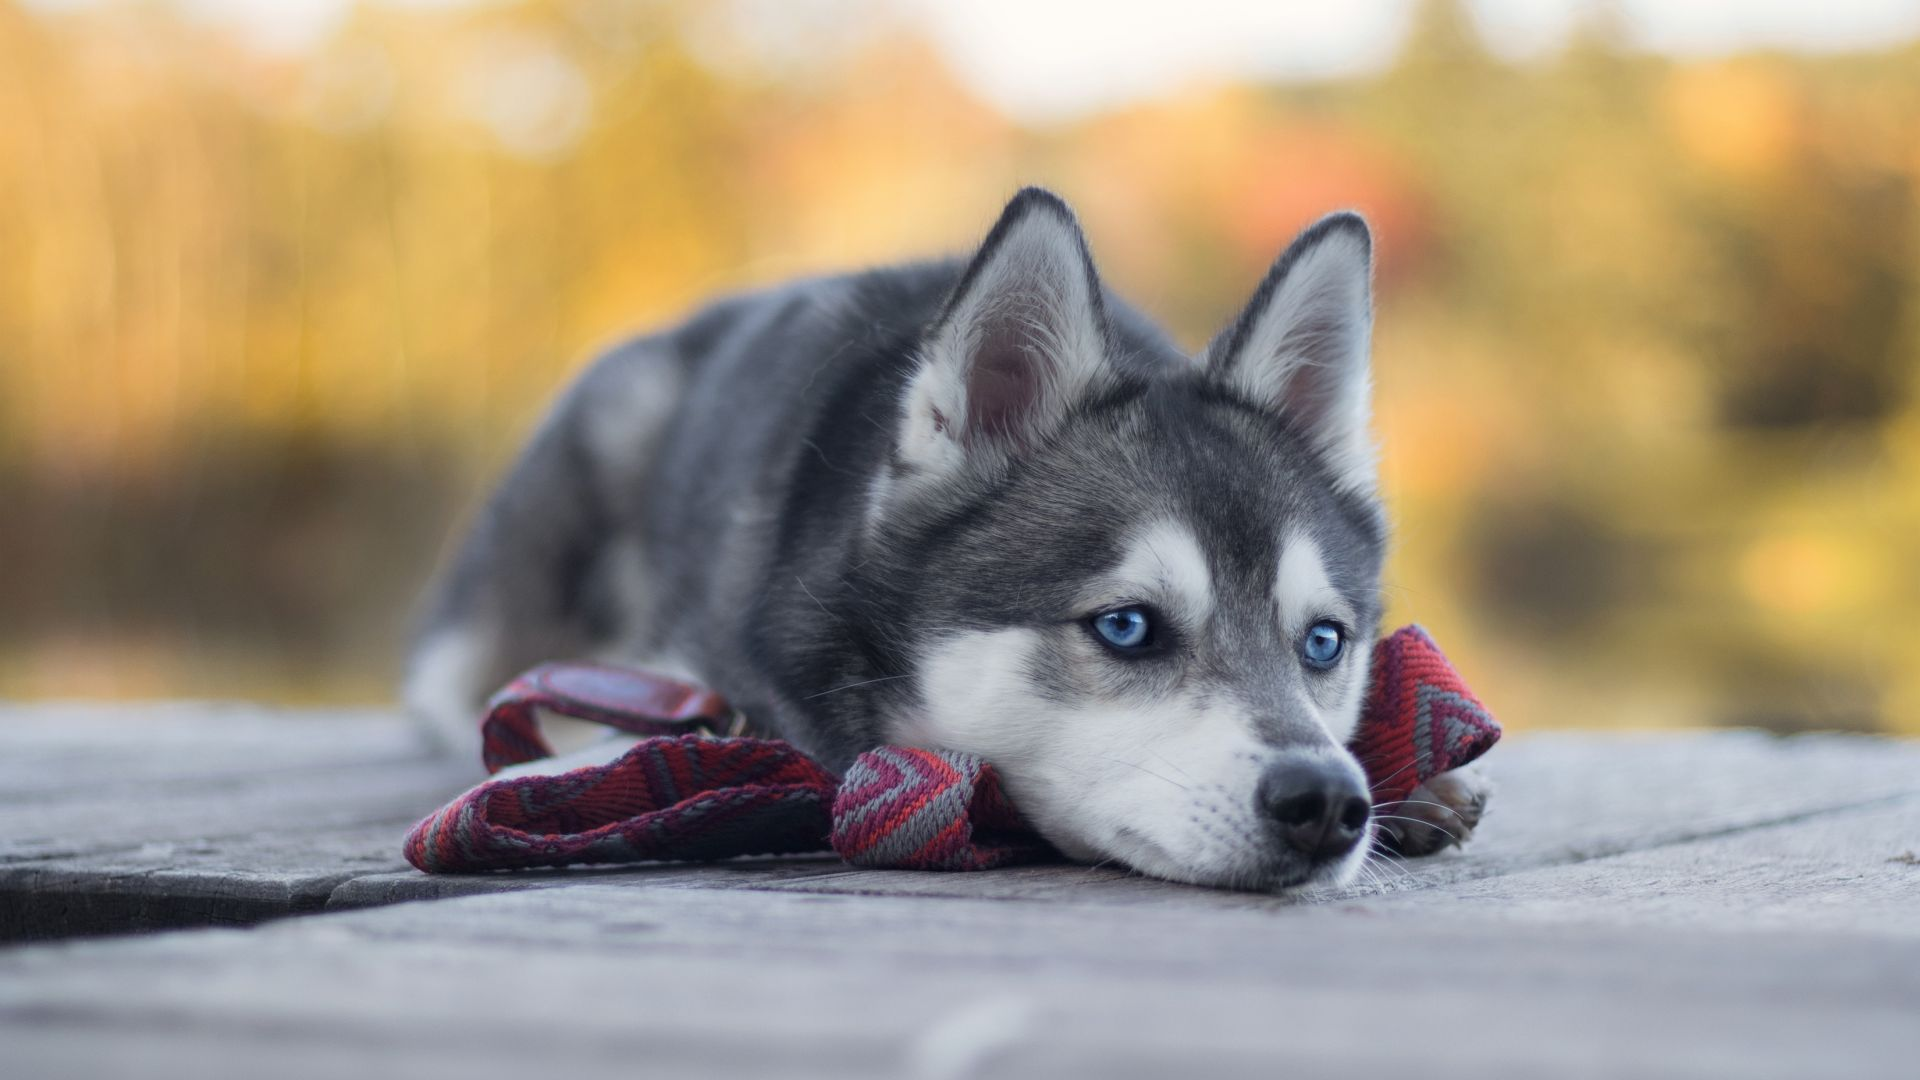 Хаски, собака, Husky, dog, cute animals, 4K (horizontal)